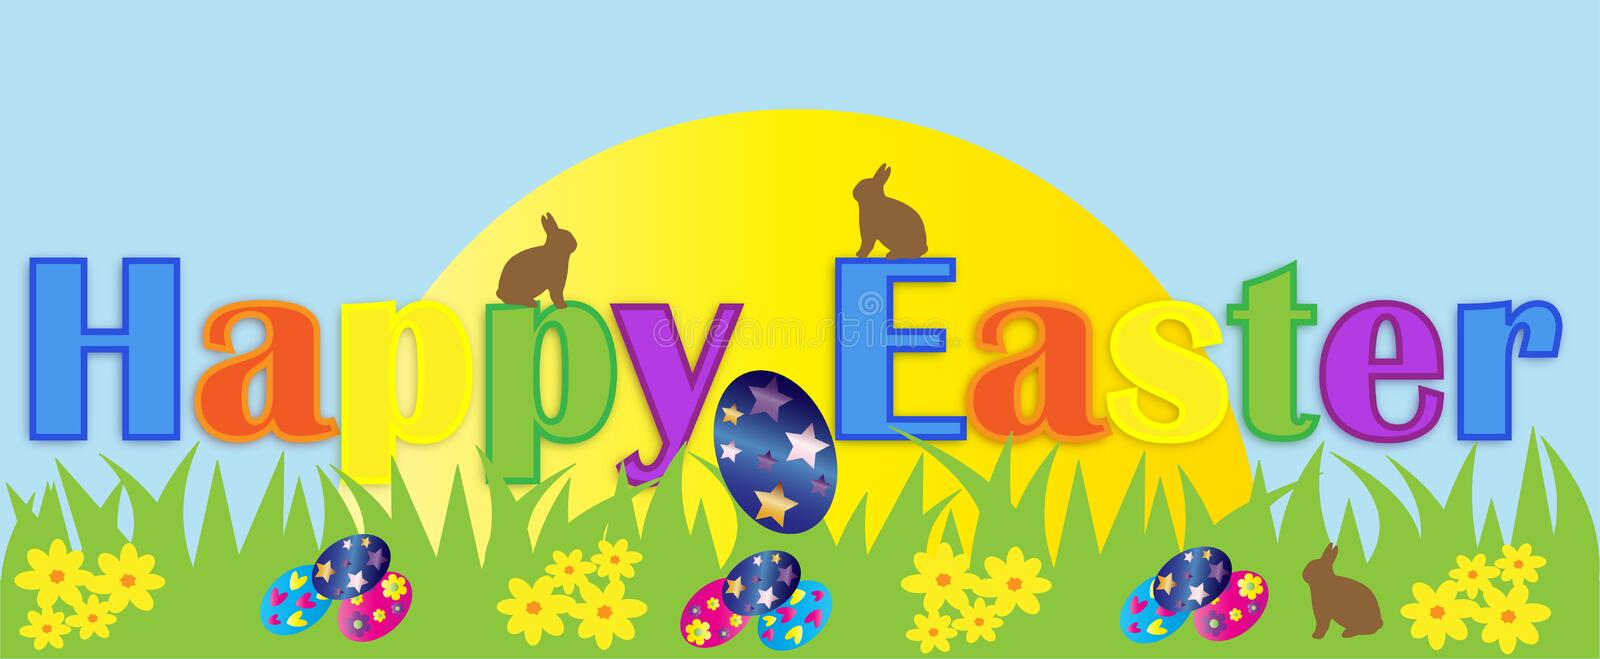 Happy Easter Banner royalty free illustration